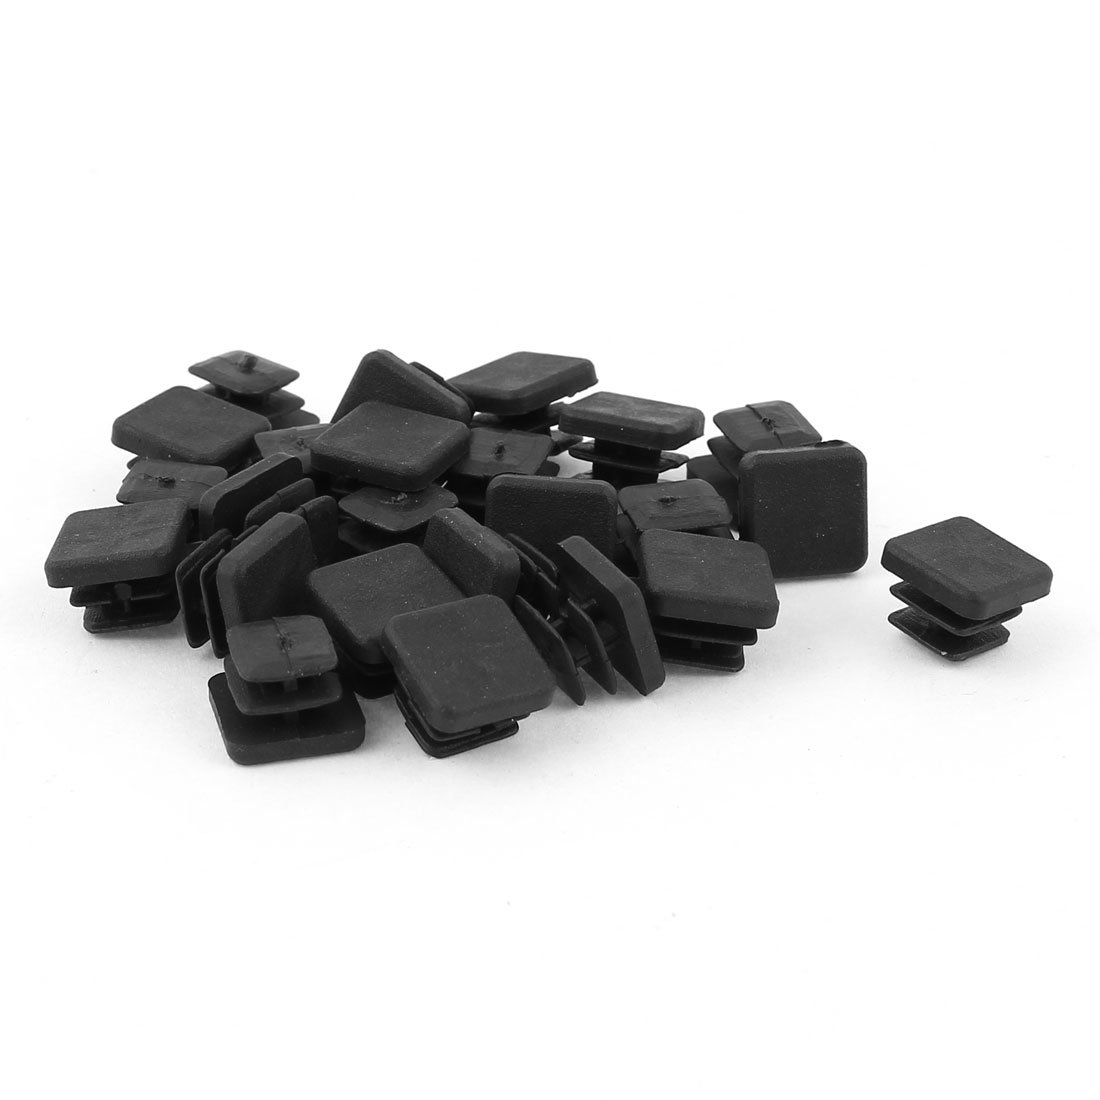 10mm x 10mm Plastic Square Caps Tubing Pipe Insert End Blanking 24 Pcs uxcell a14091000ux0110